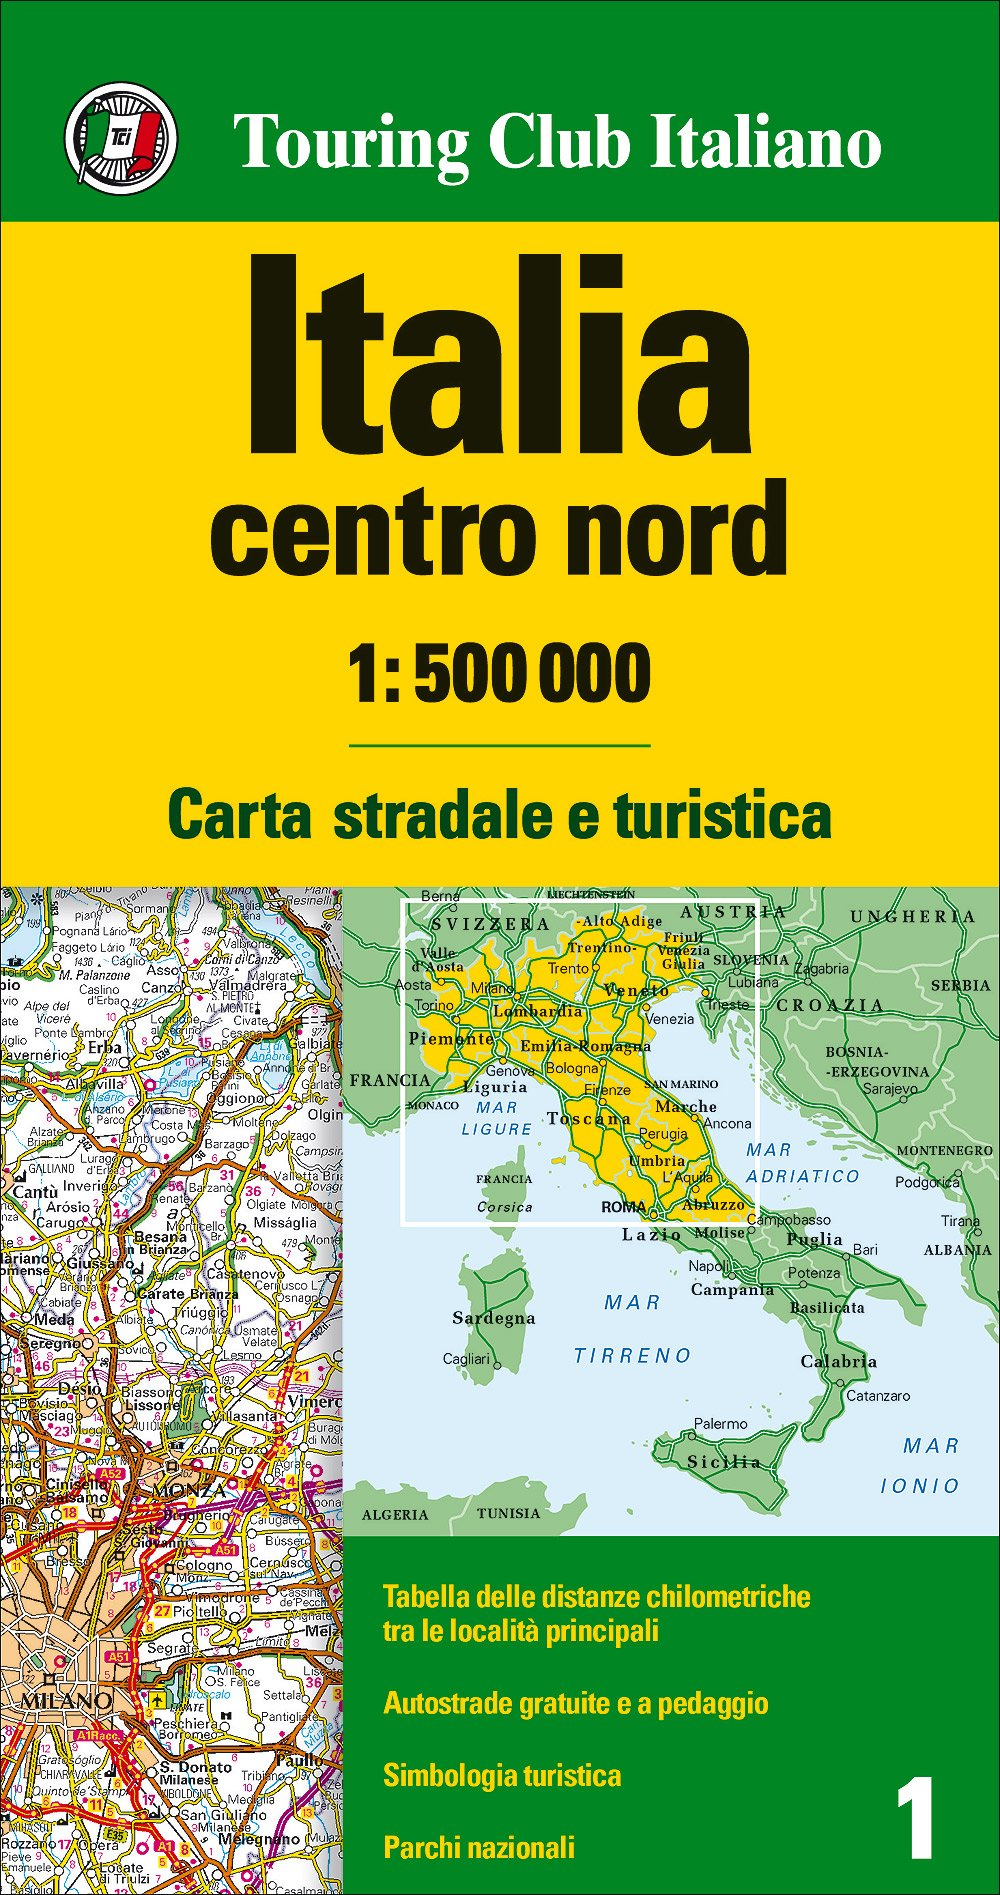 Cartina Nord Italia Google Maps.Amazon It Italia Centro Nord 1 500 000 Carta Stradale E Turistica Aa Vv Libri